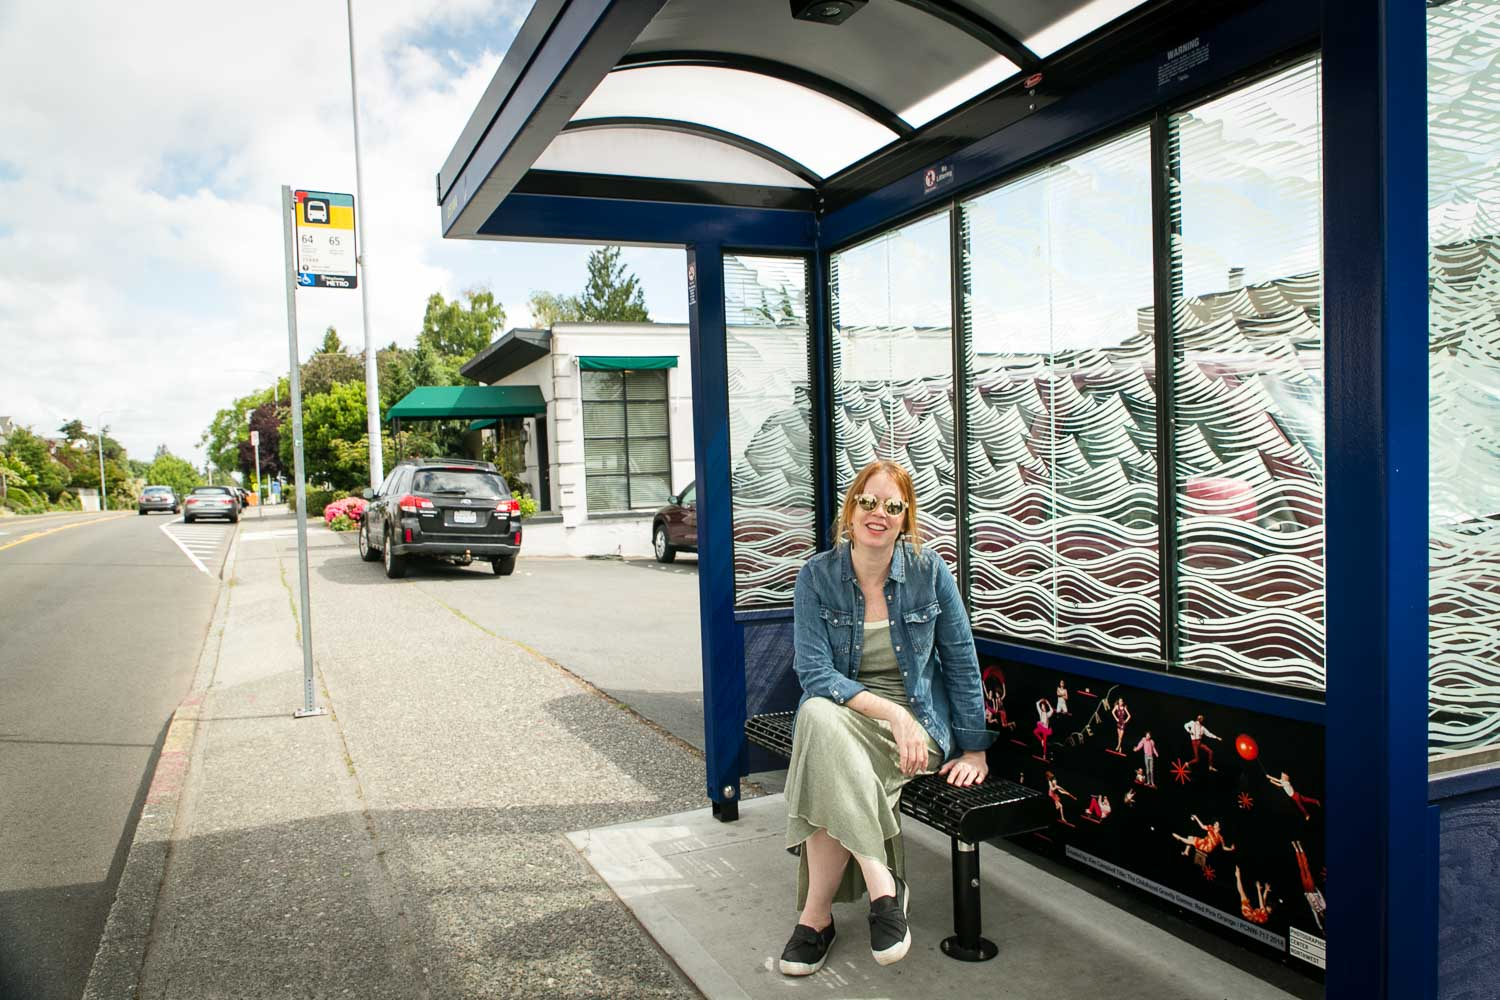 kim-campbell-panorama-bus-bench-35th-ave-seattle_03.jpg